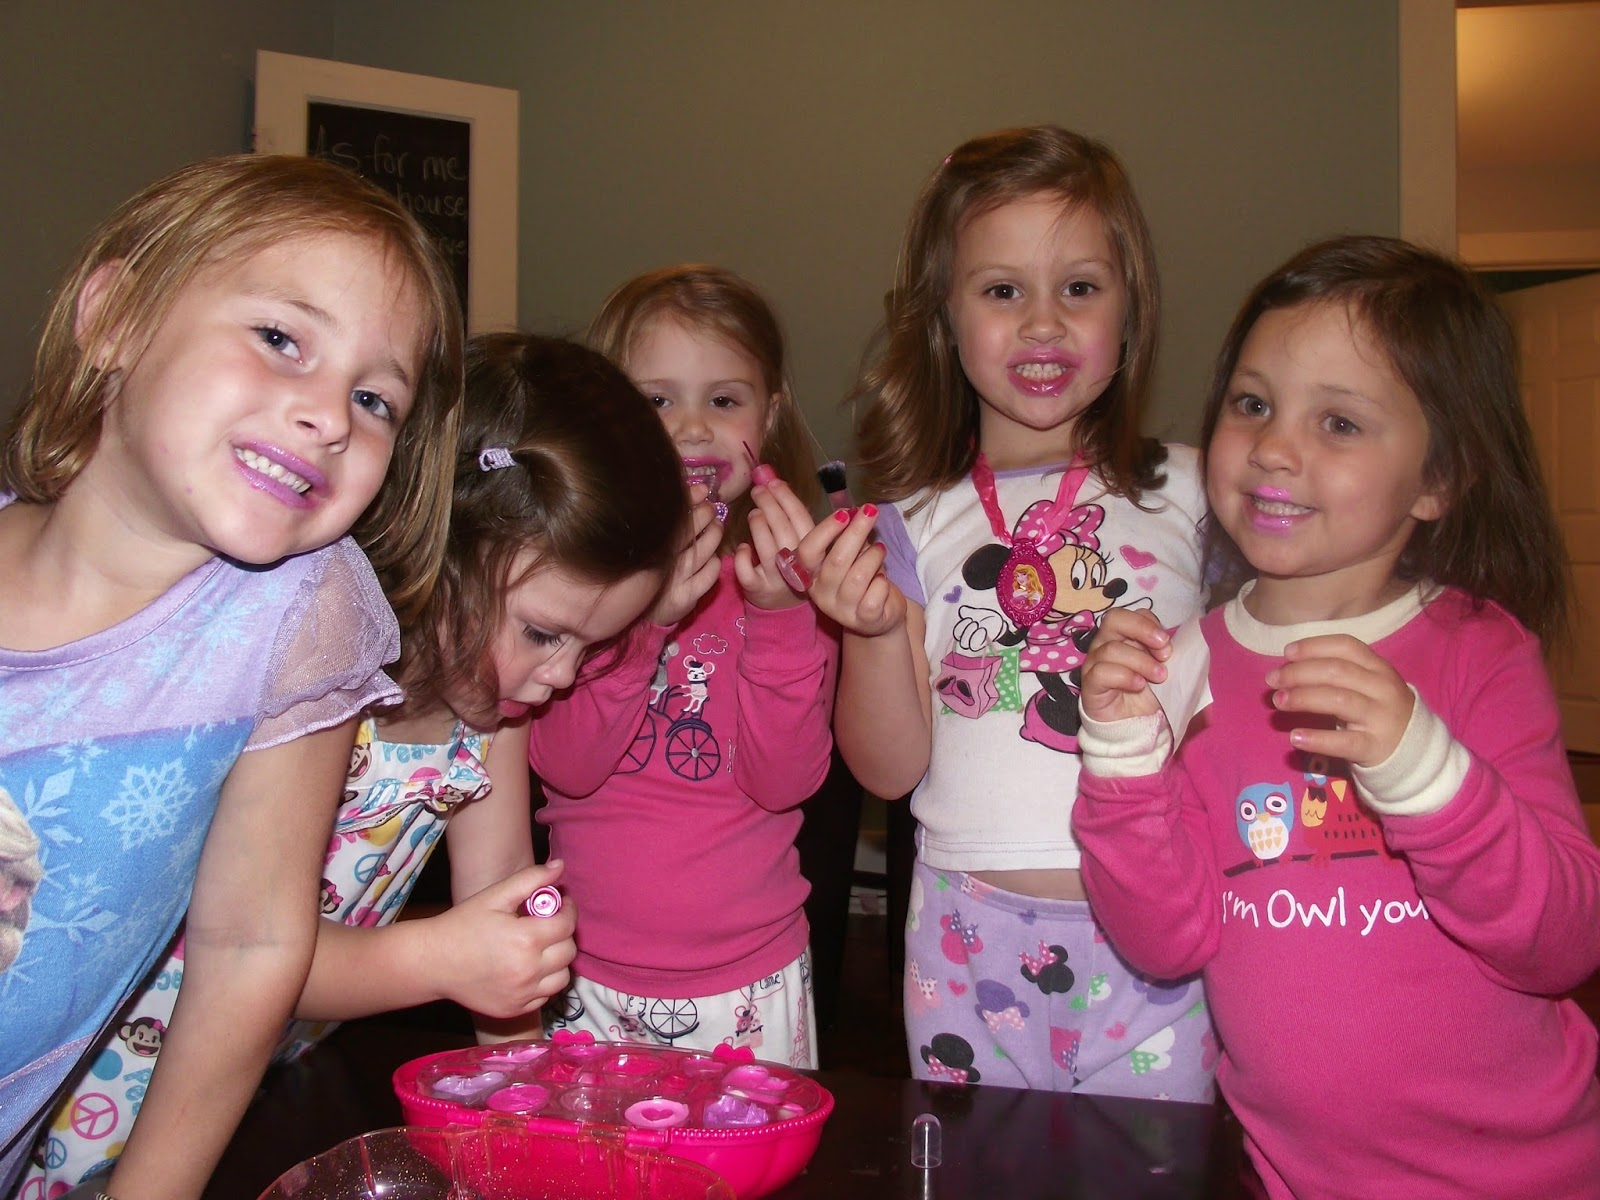 Thank you for visiting My Girly Party, where no Dream is too BIG! Have your Private Party in our party room located in Farmington Hills, MI or at your location. We offer many girly party packages including My Dream Diva Party, My Princess Tea Party, My Sassy Spa Party, Pajama Jam, Princess & Pirate and more! Traveling Spa Party for Girls!